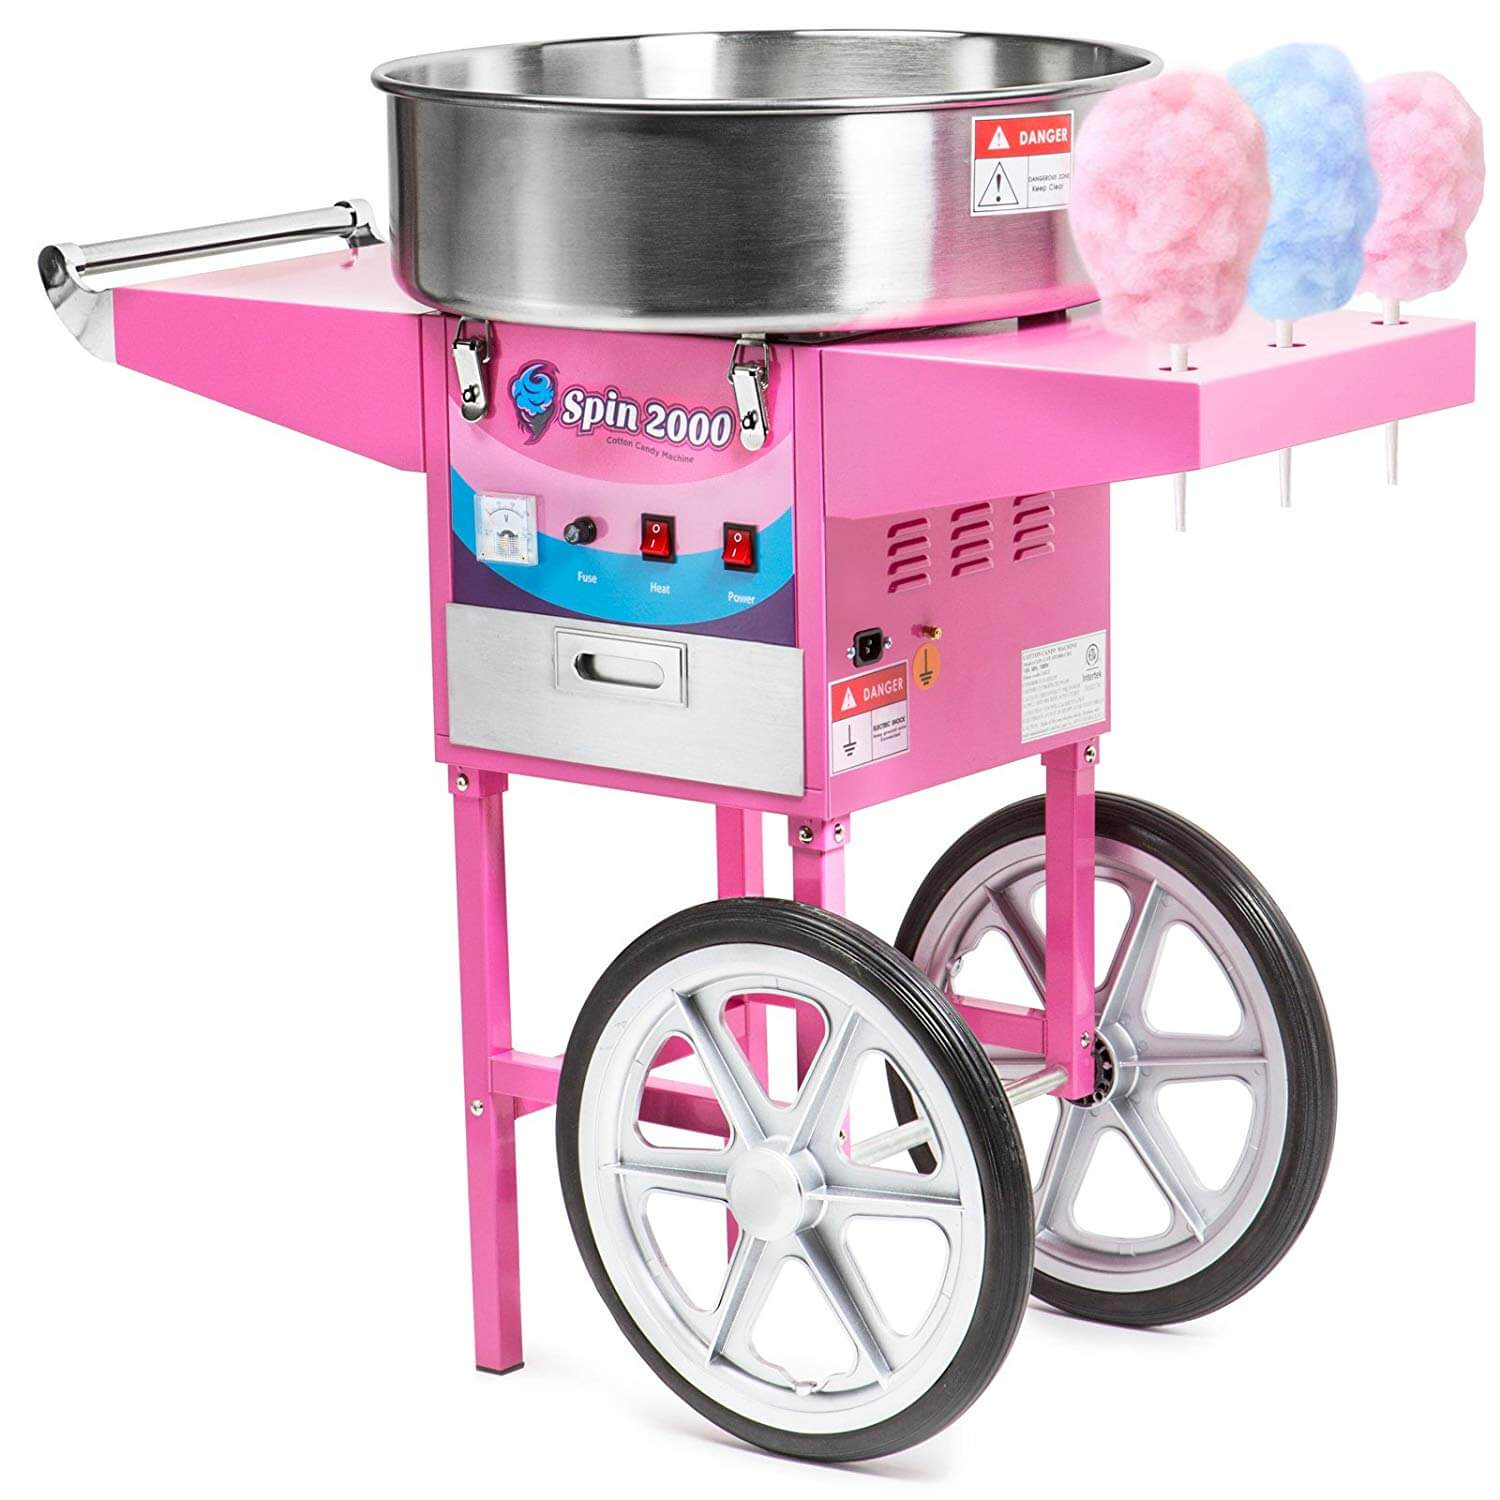 Olde Midway Commercial Quality Cotton Candy Machine Cart and Electric Candy Floss Maker